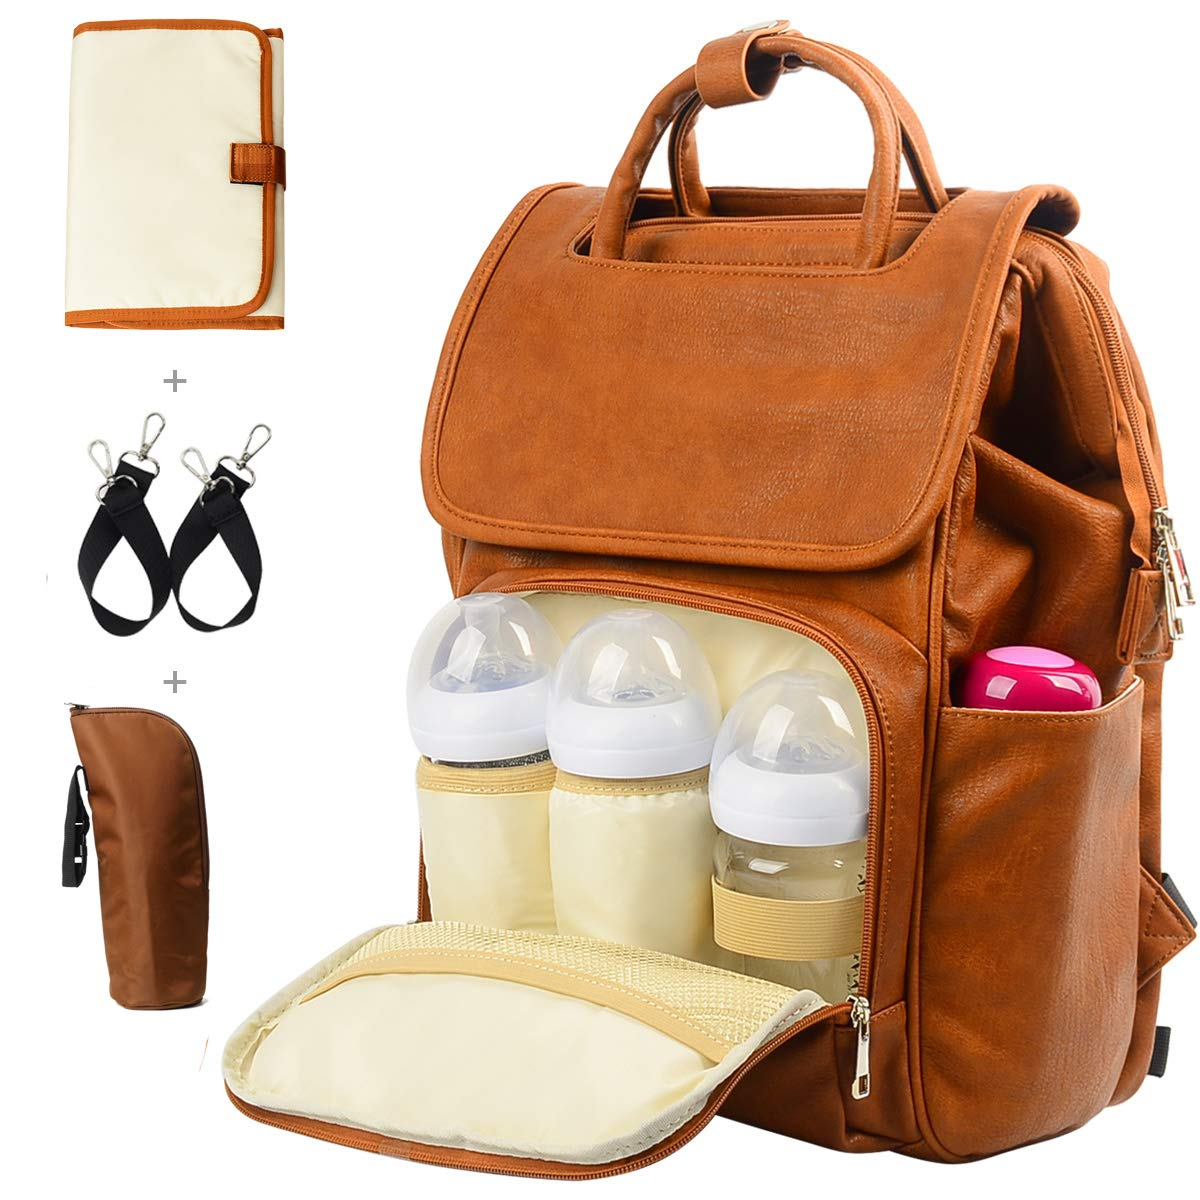 Leather Diaper Backpack, Travel Diaper Backpack Nappy Baby Bags for Mom Unisex Maternity Diaper Bag with Stroller Hanger|Thermal Pockets|Adjustable Shoulder Straps|Water Proof| LargeCapacity (Brown)